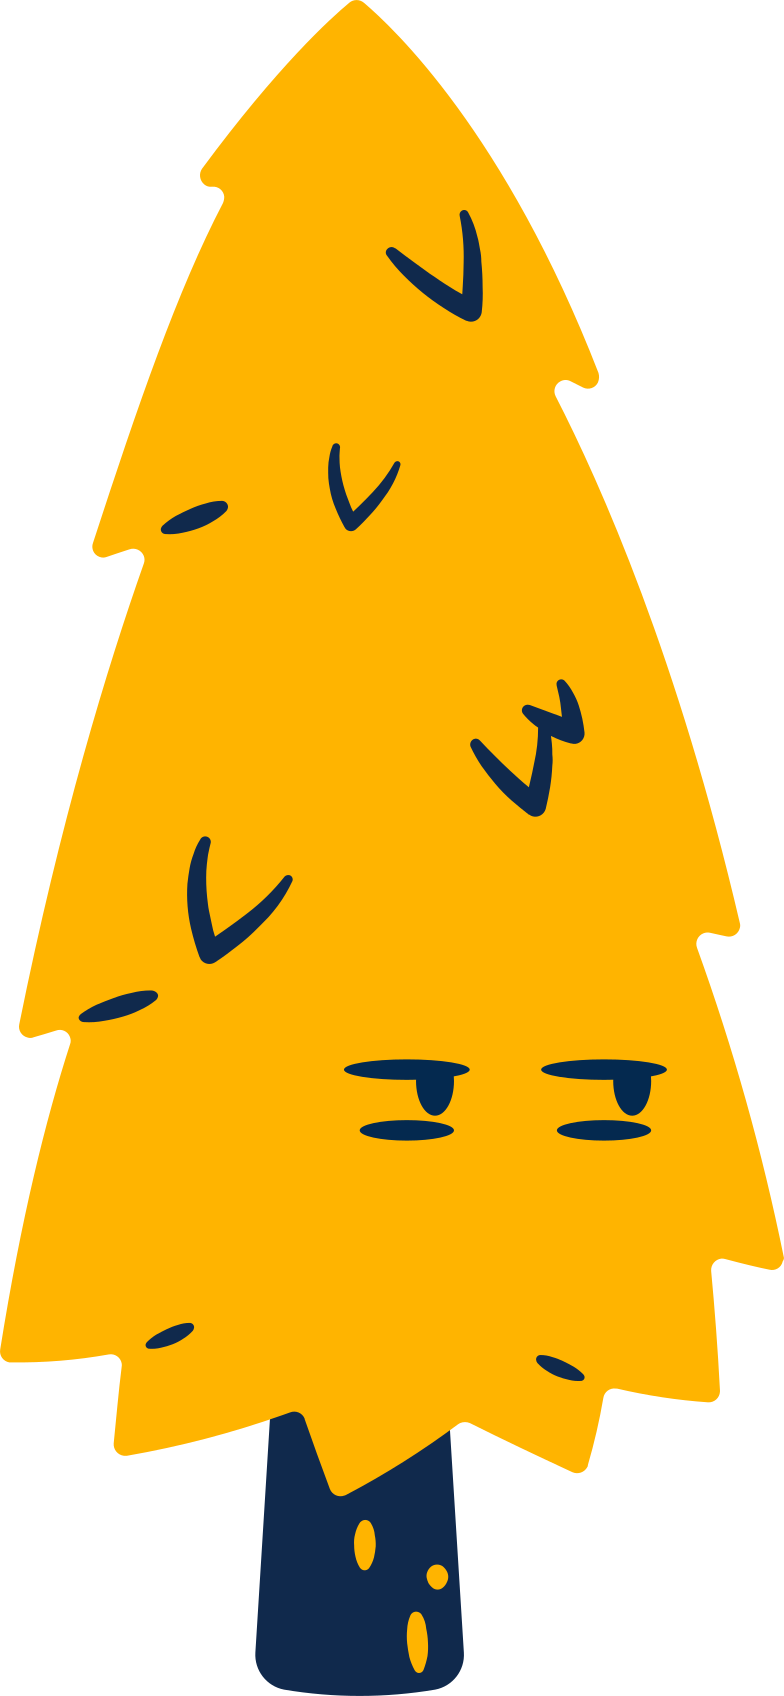 annoyed tree Clipart illustration in PNG, SVG